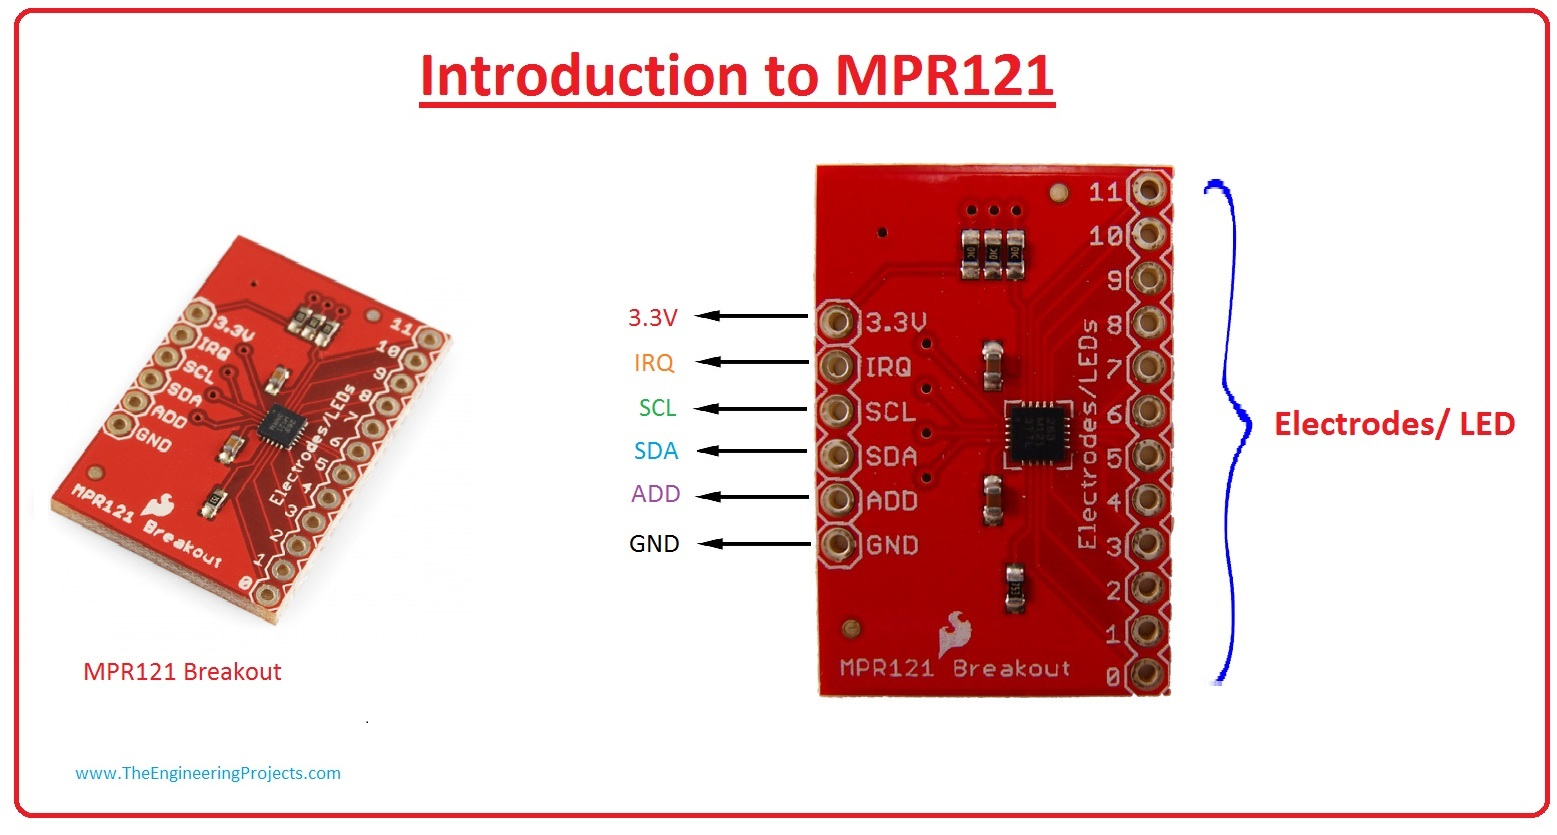 introduction to MPR121, mpr121 working, mpr121 pinout, mpr121 applications, mpr121 features, mpr121